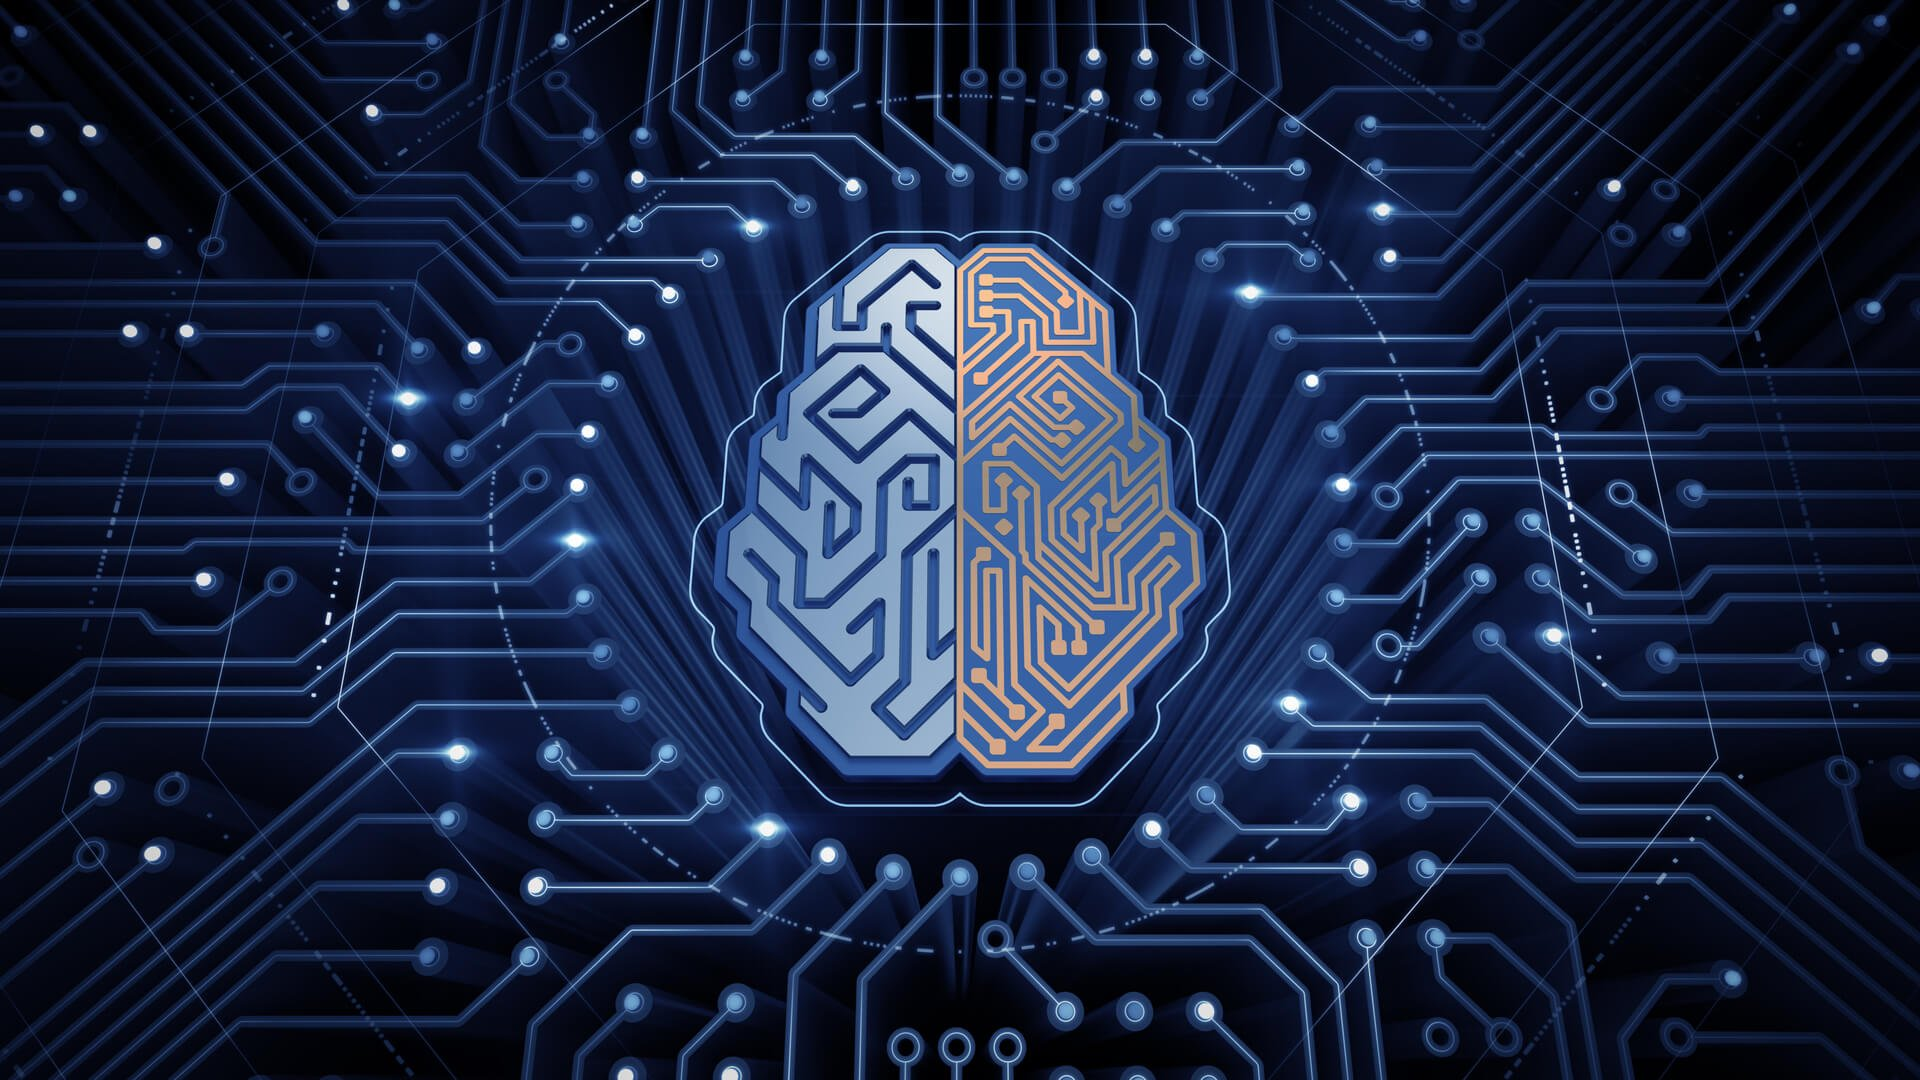 Imagining the possibilities of marketing and artificial intelligence